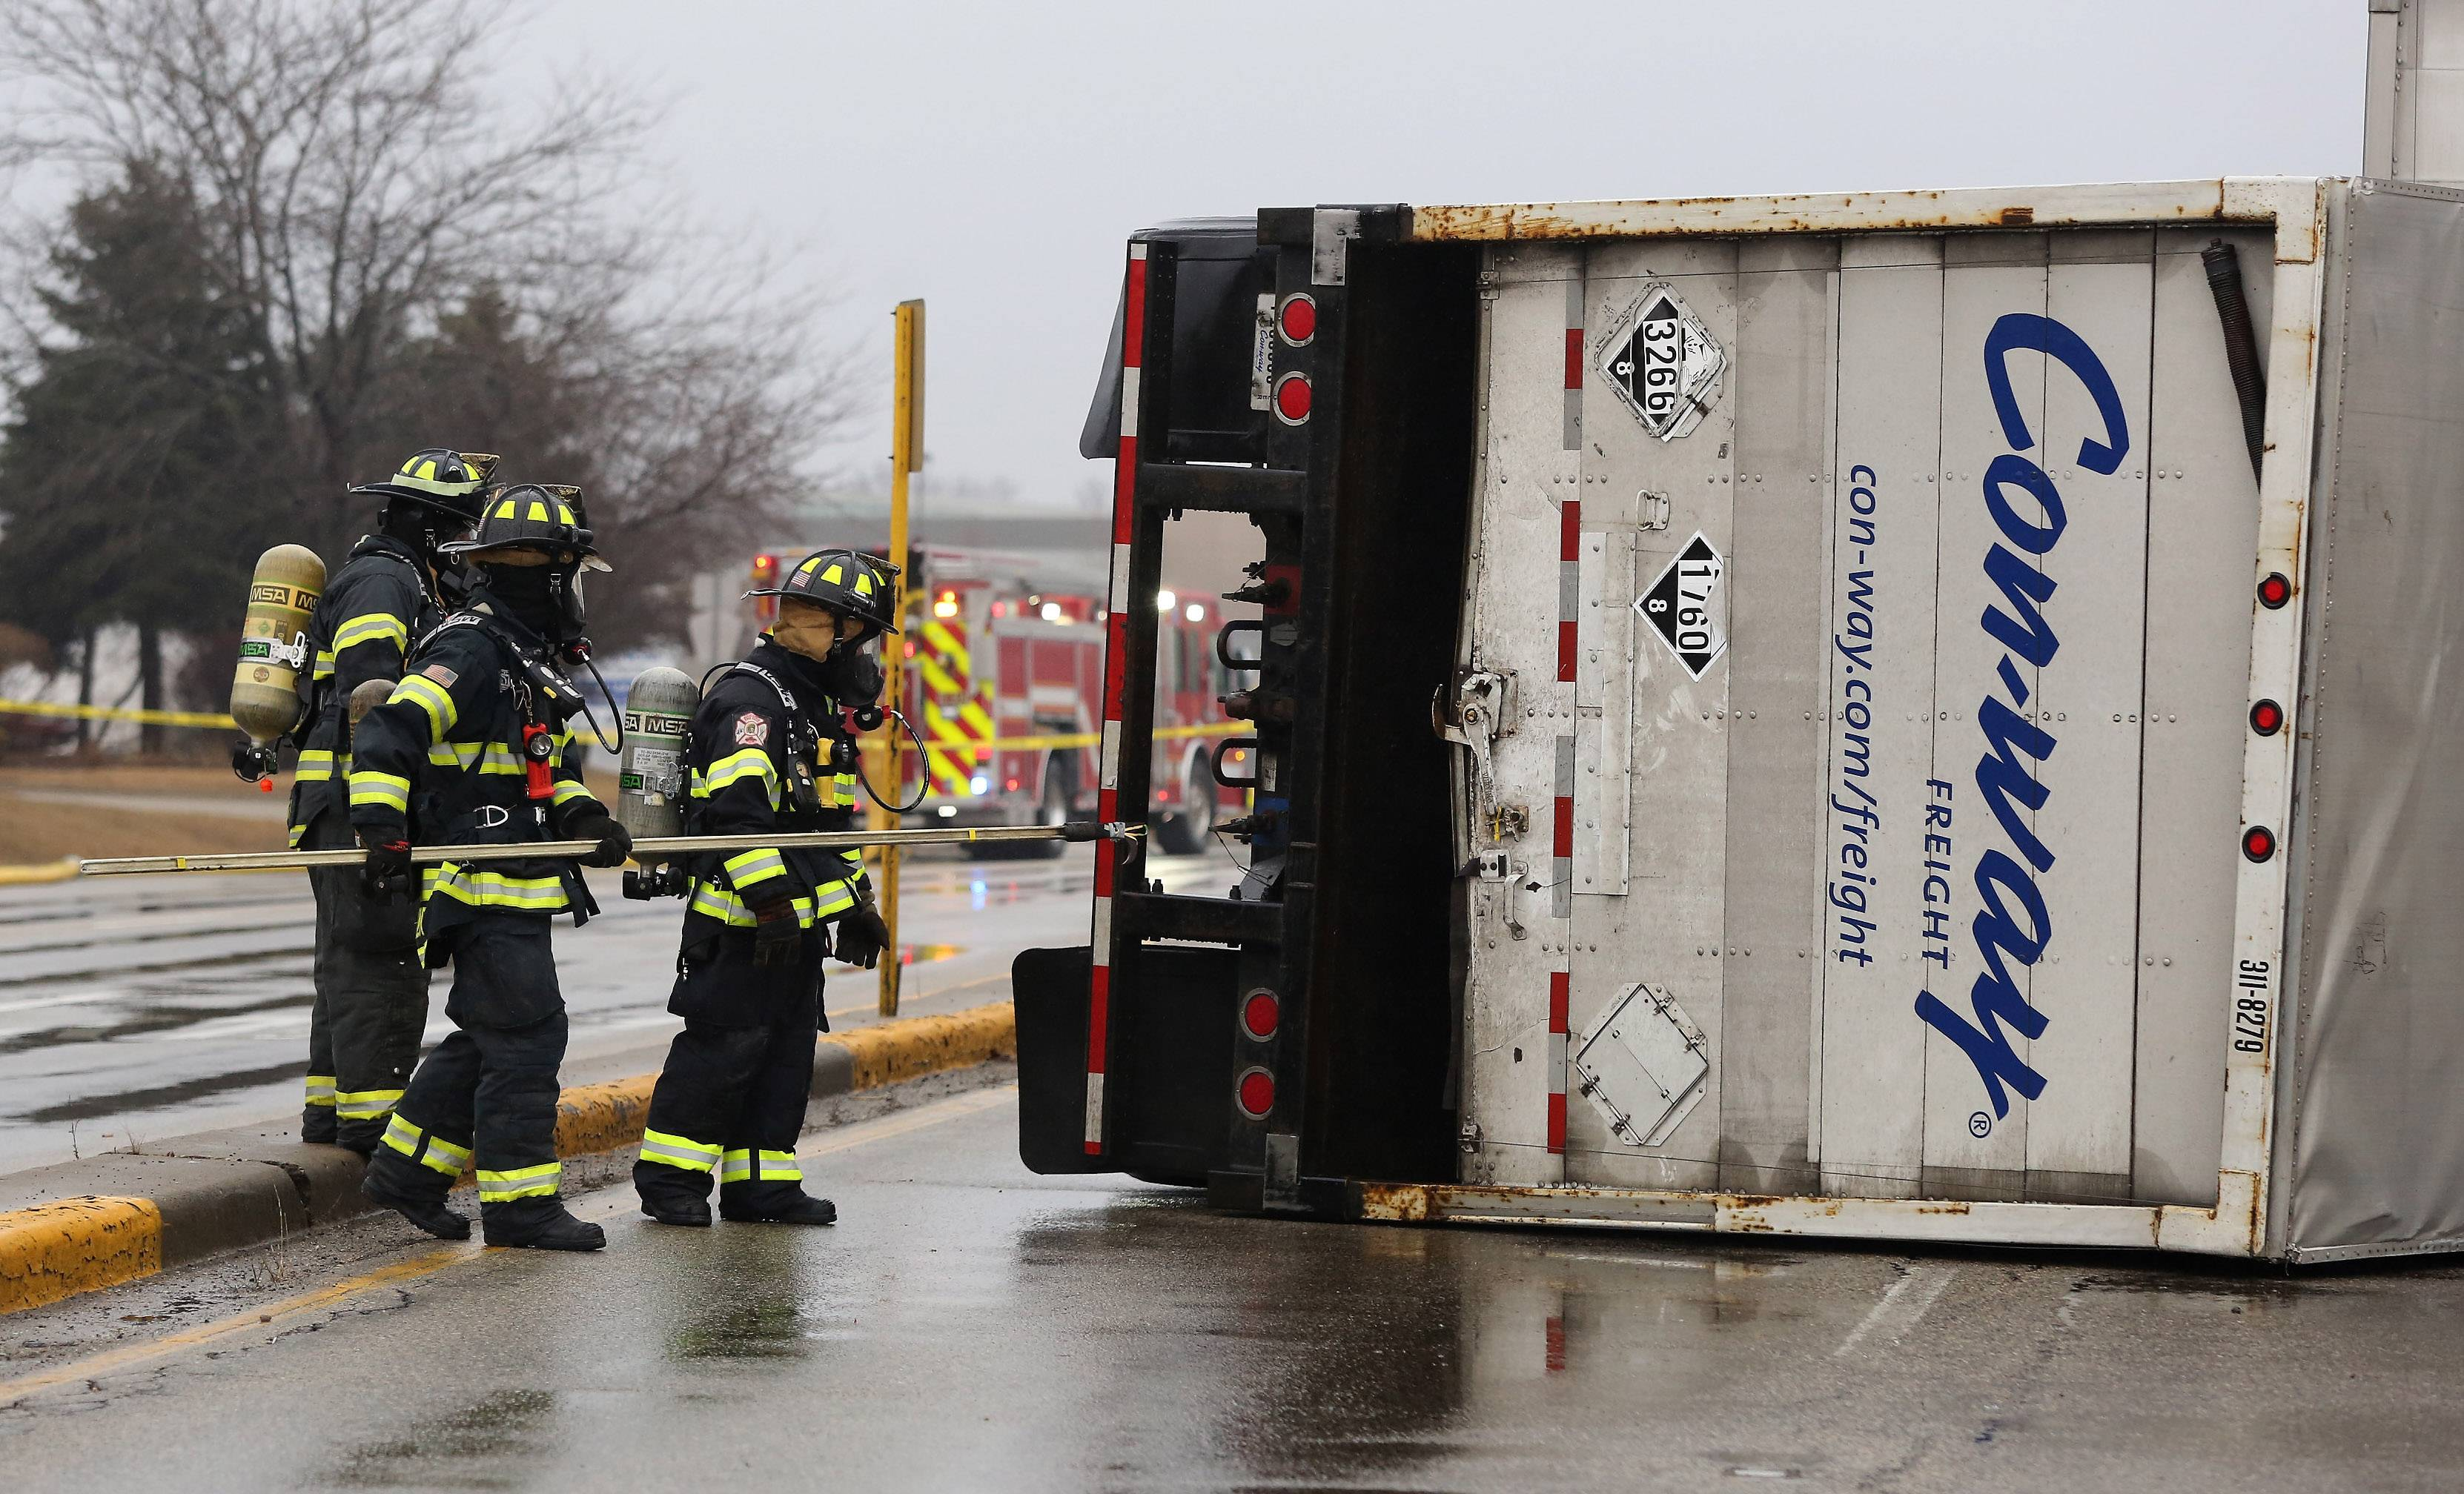 The Lake County Hazmat team test an overturned semitrailer for chemical exposure due to corrosive cleaning materials that spilled inside at Route 60 and Butterfield Road in Vernon Hills. The Wednesday morning accident caused major traffic delays during morning rush hour.